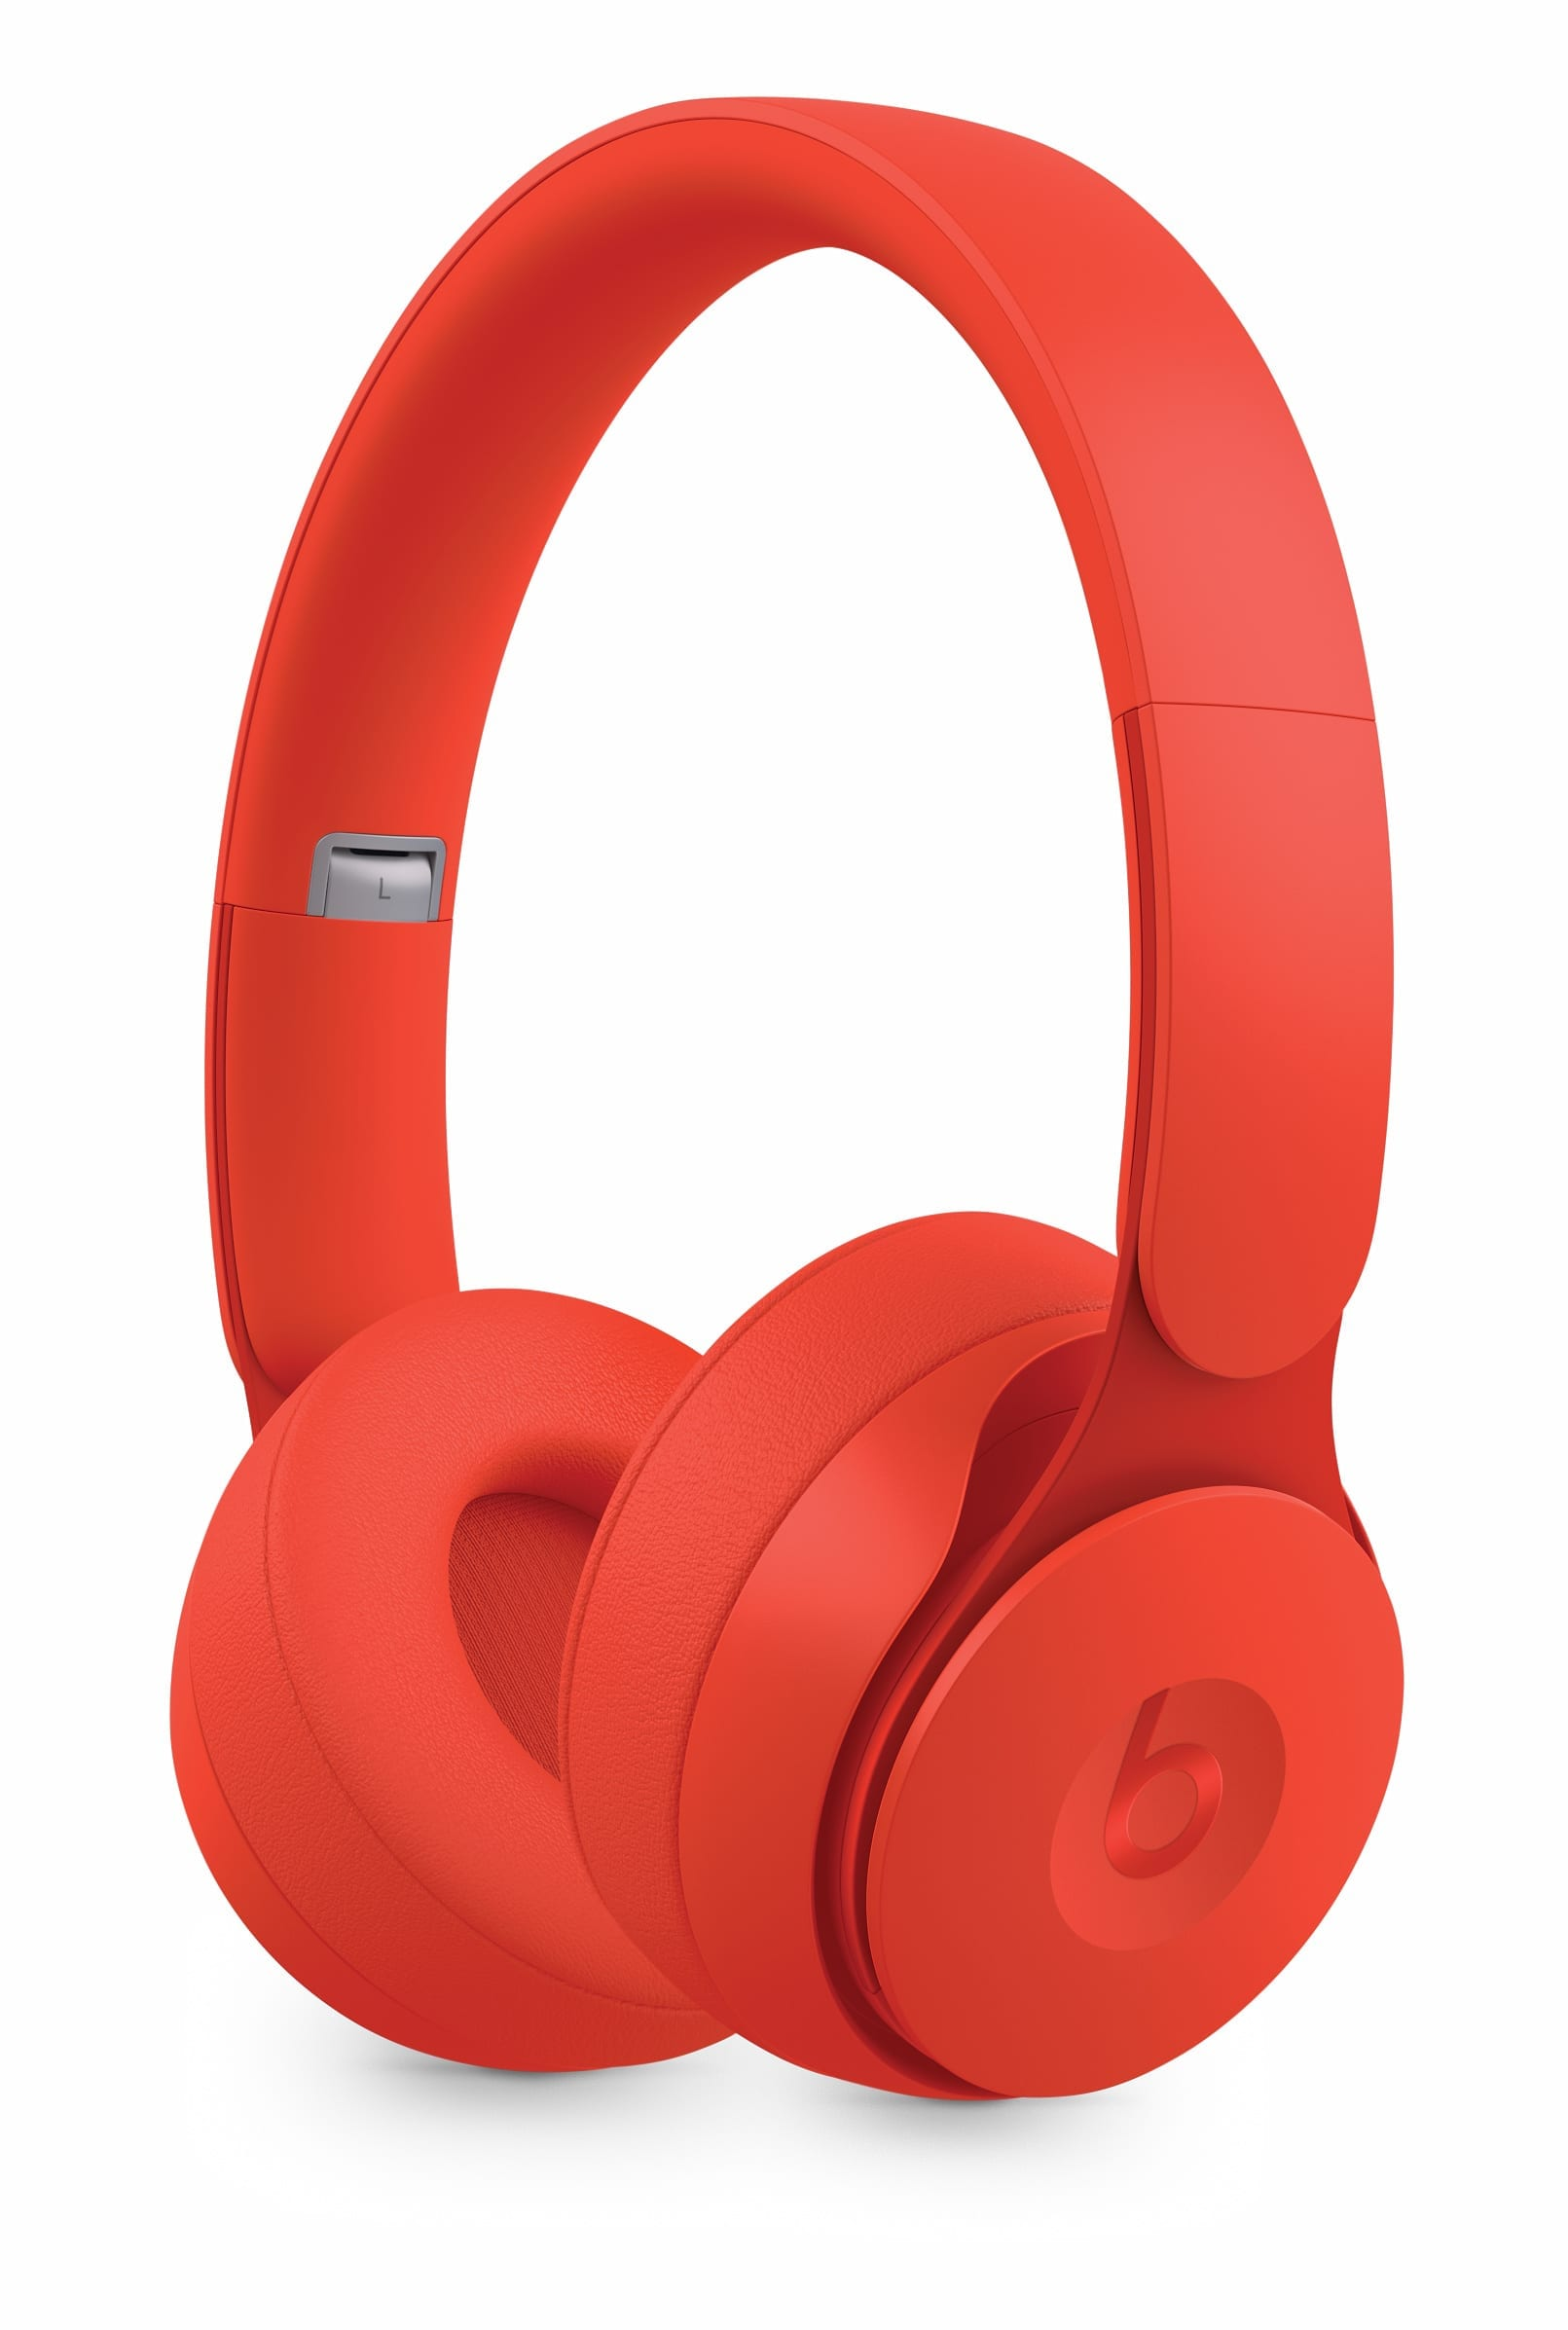 Amazon: Save up to 33% off select Beats Solo Pro Headphones